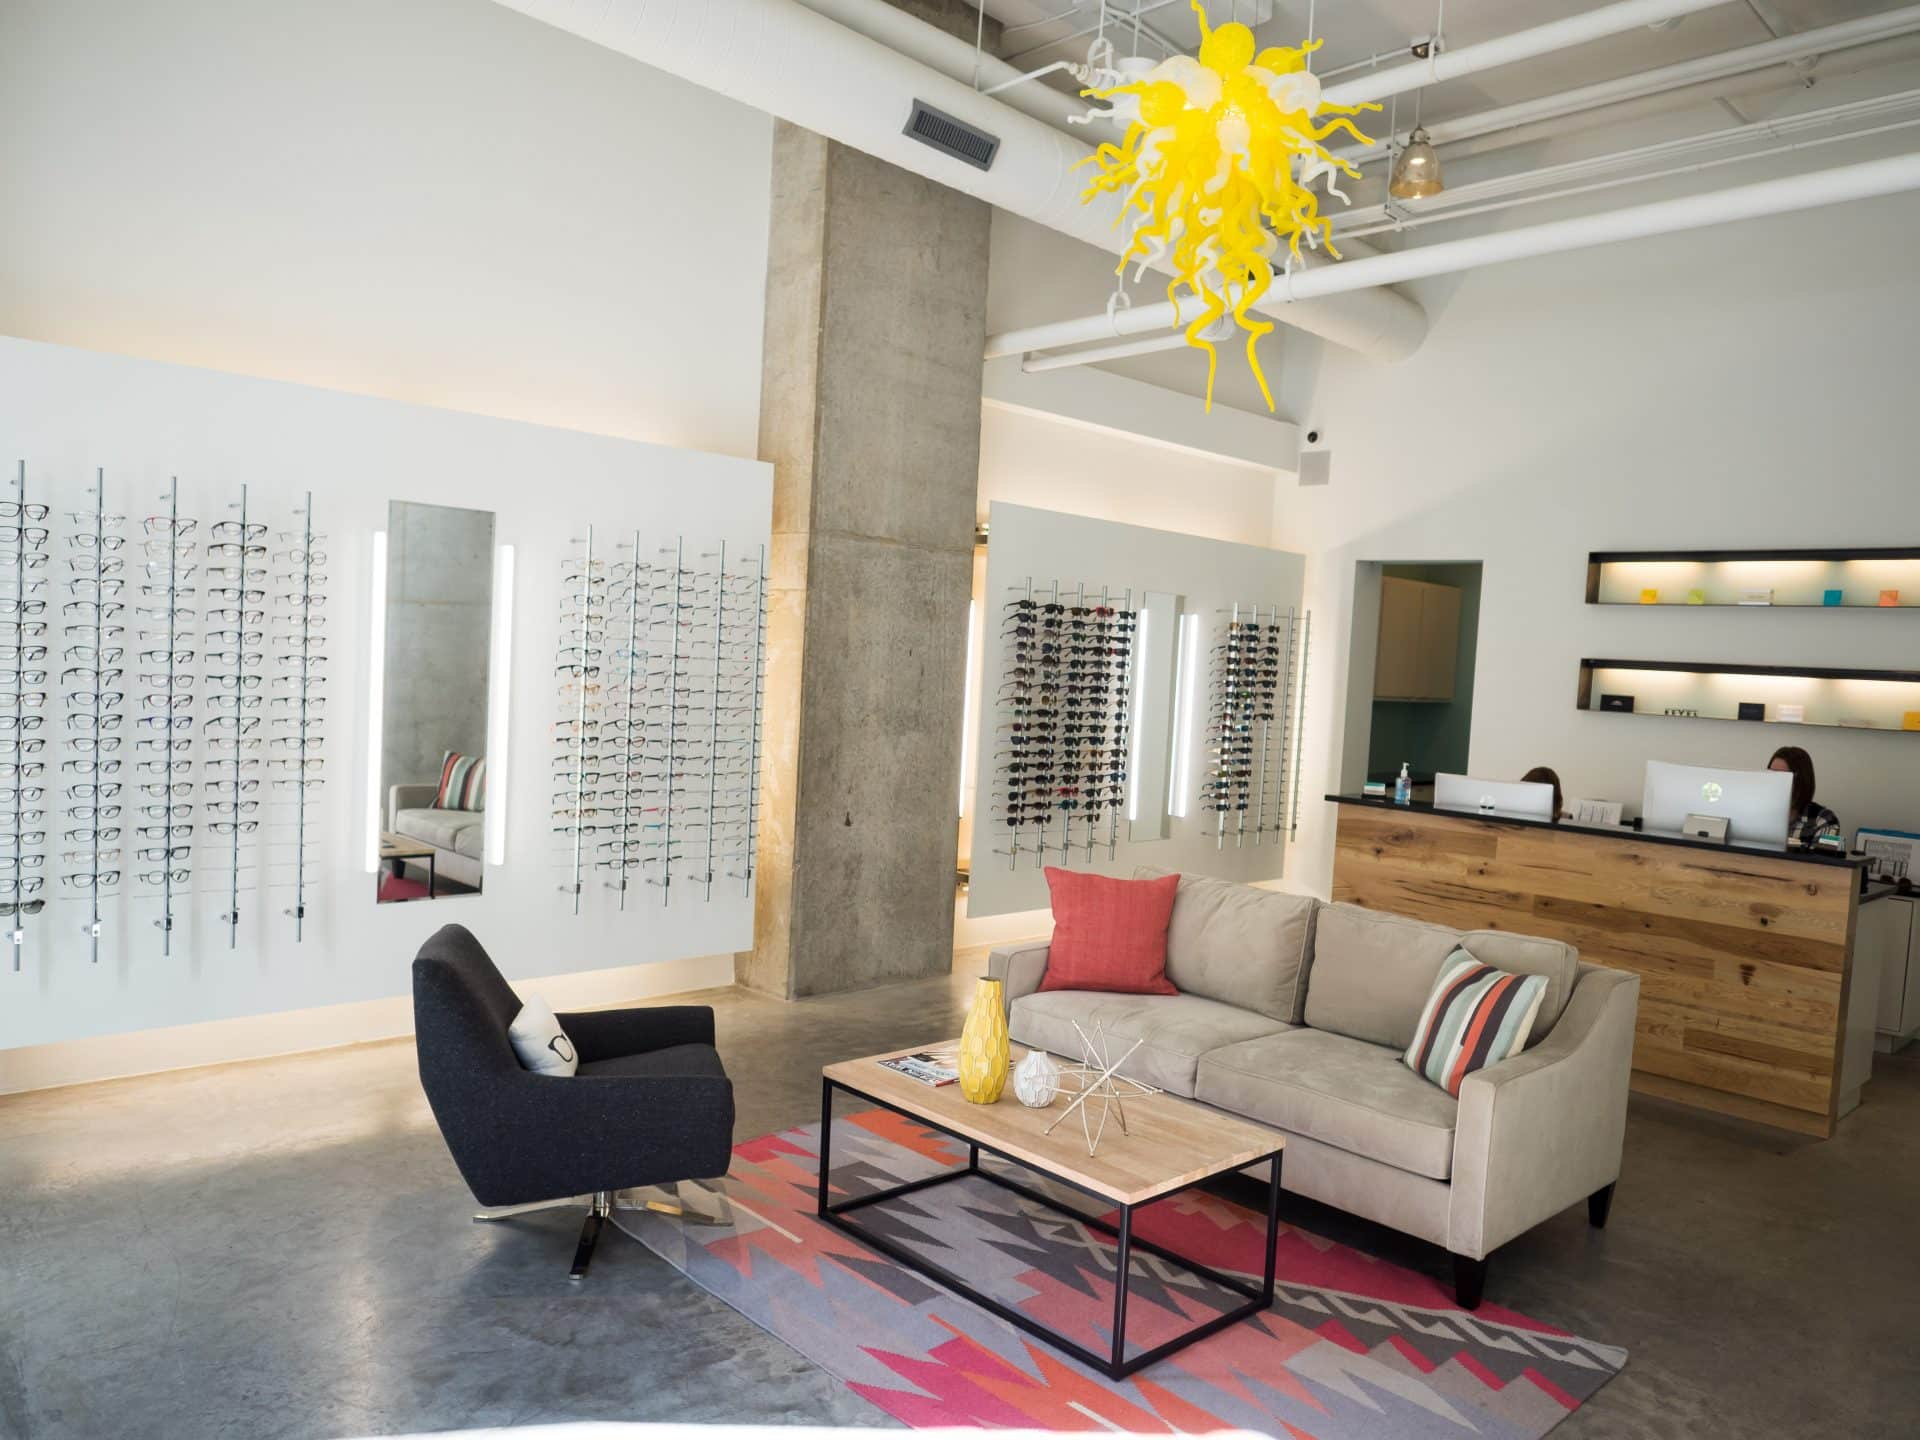 Westlake Eyecare - Downtown Austin office interior